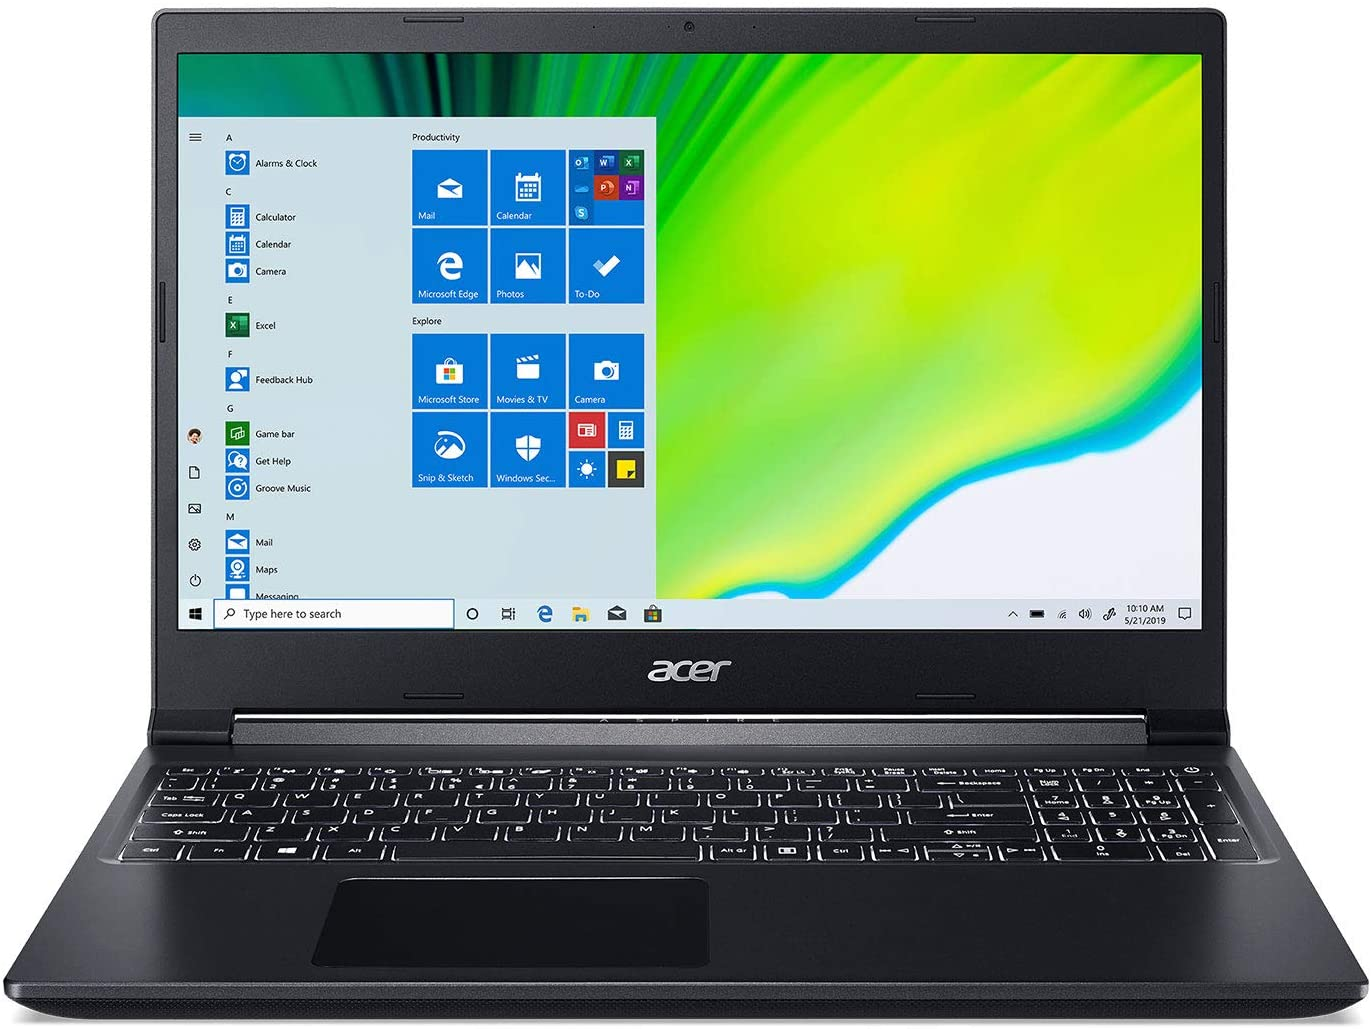 "Acer Aspire 7 Laptop, 15.6"" Full HD IPS Display, 9th Gen Intel Core i5-9300H, NVIDIA GeForce GTX 1650, 8GB DDR4, 512GB NVMe SSD, Backlit Keyboard, Windows 10 Home, A715-75G-544V"